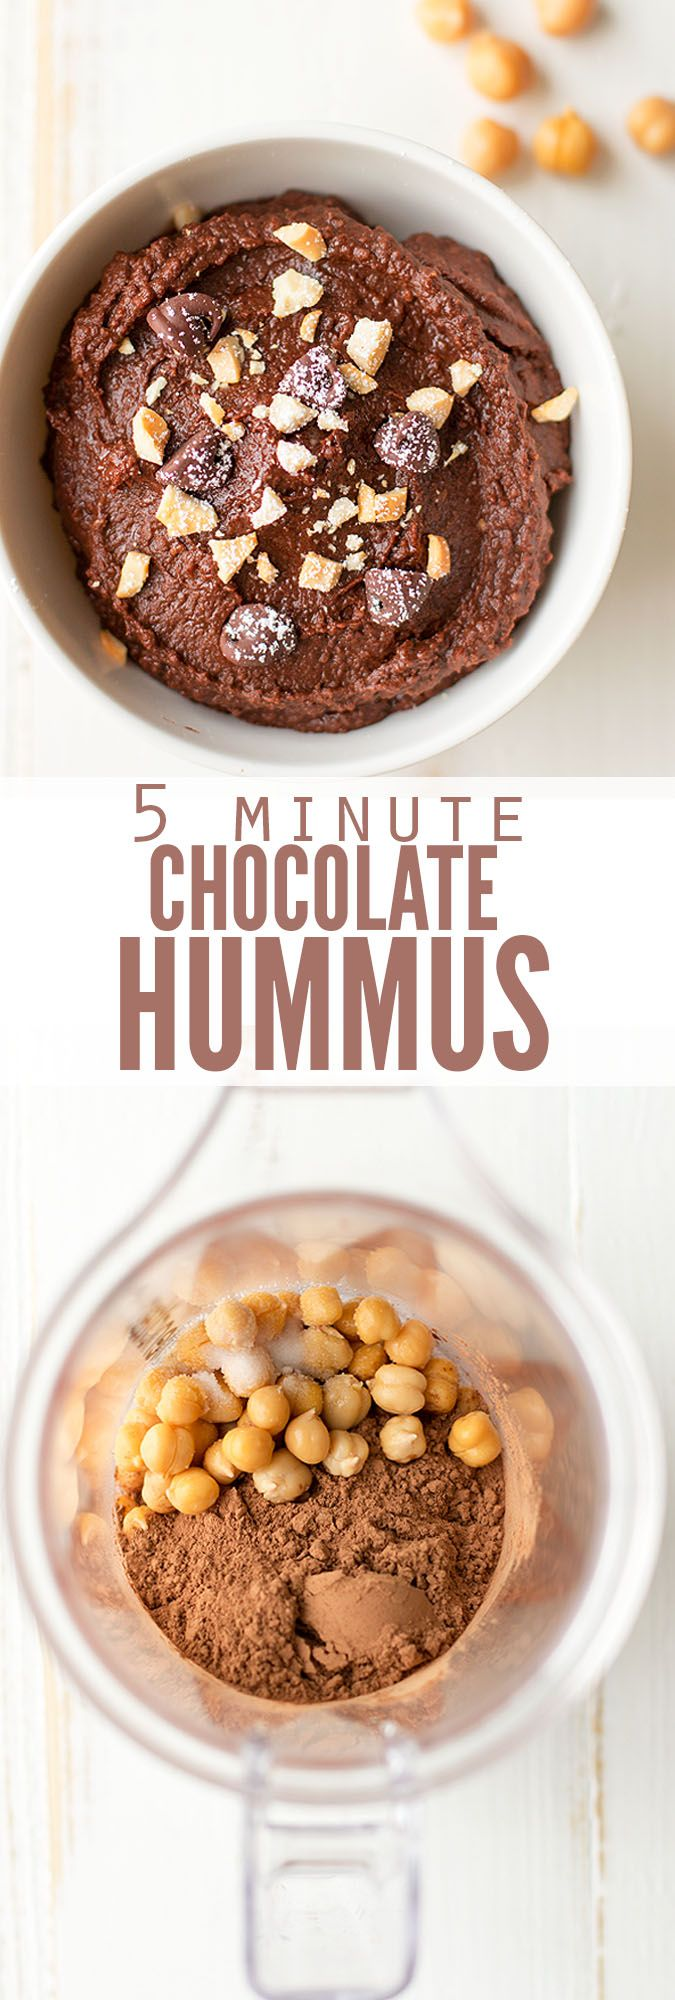 Chocolate Hummus | 5 Minute Dessert Recipe Using Beans